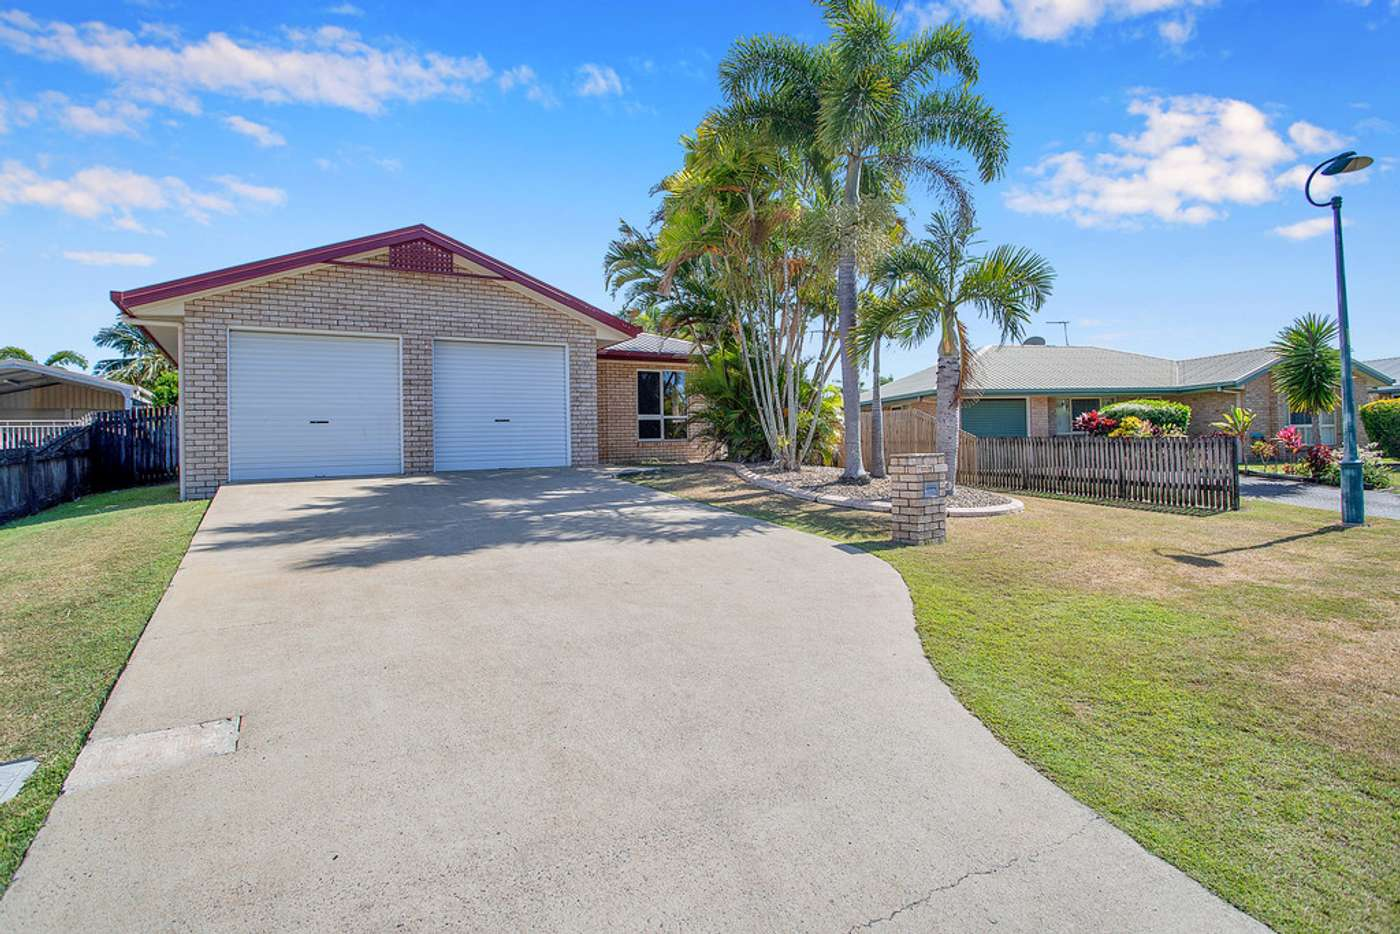 Main view of Homely house listing, 22 Argyle Court, Beaconsfield QLD 4740